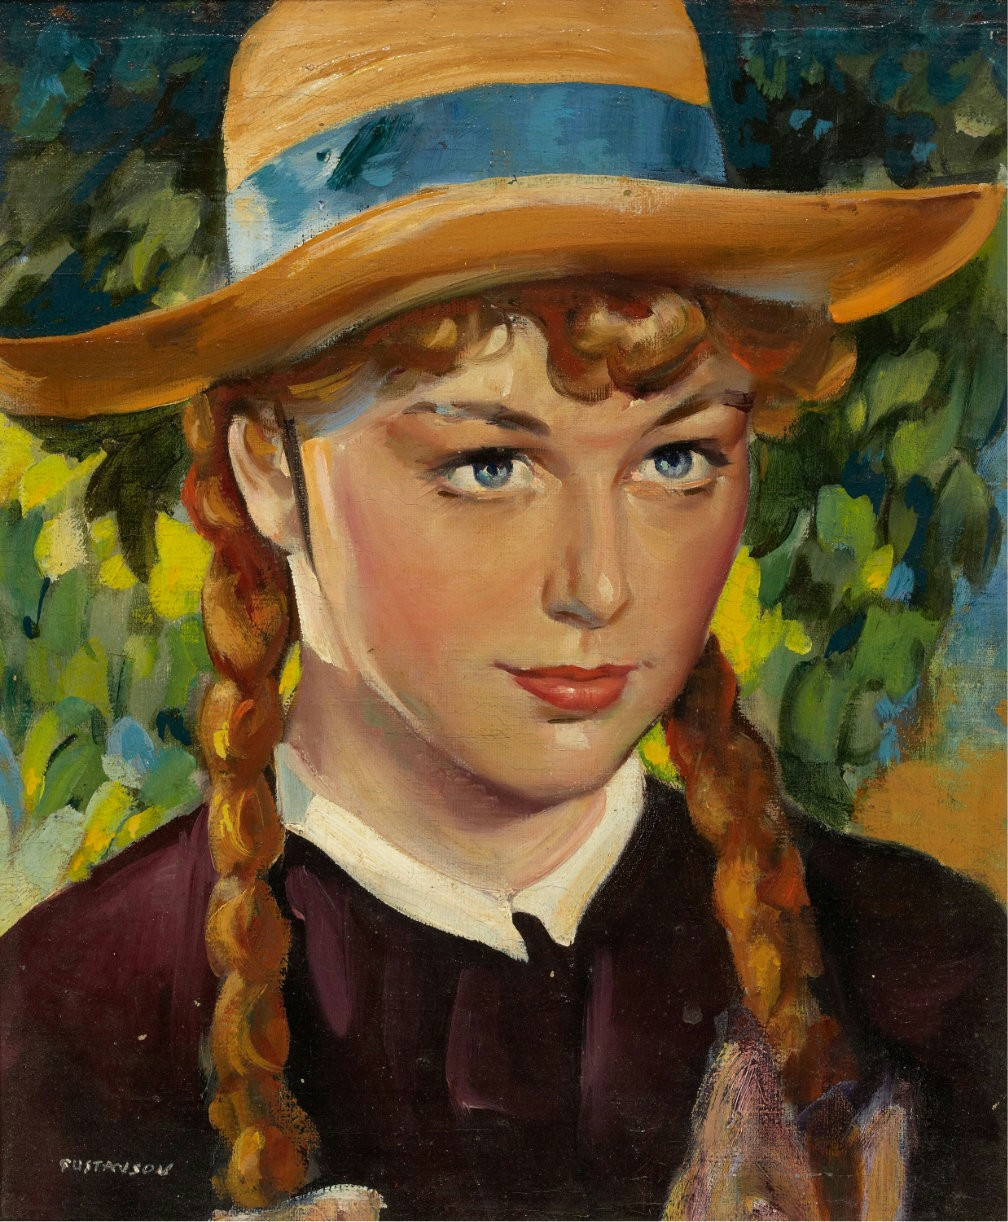 'Anne Shirley' in 'Anne of Green Gables' Illustration by Lealand R. Gustavson, American, 1894 - 1966